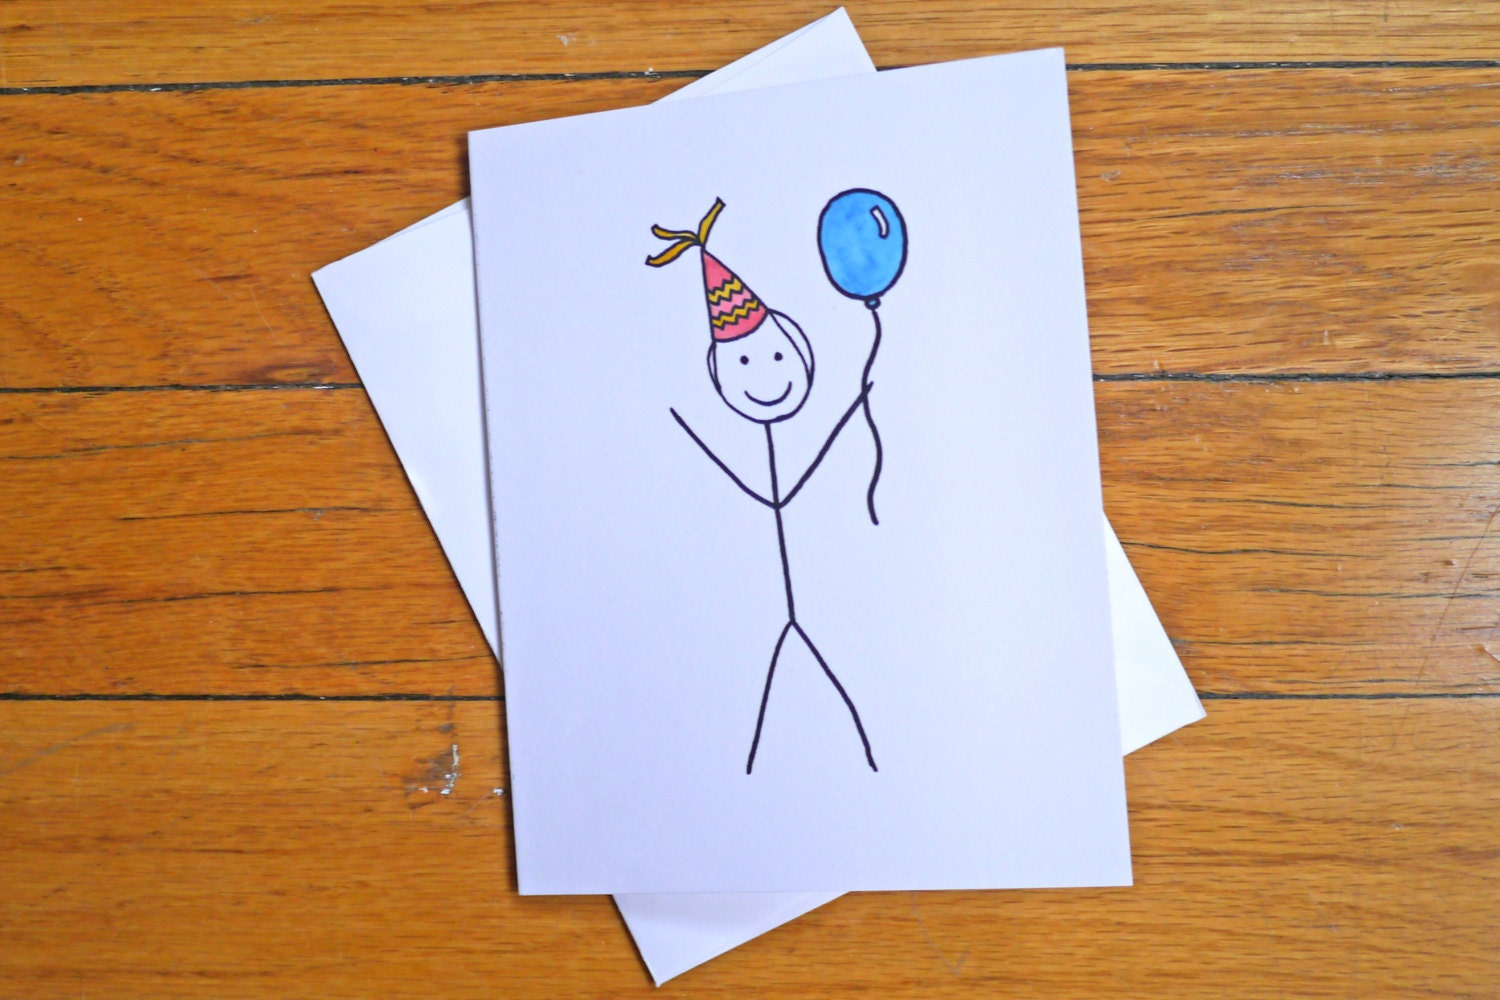 Getting old card – Funny Birthday Cards About Getting Old